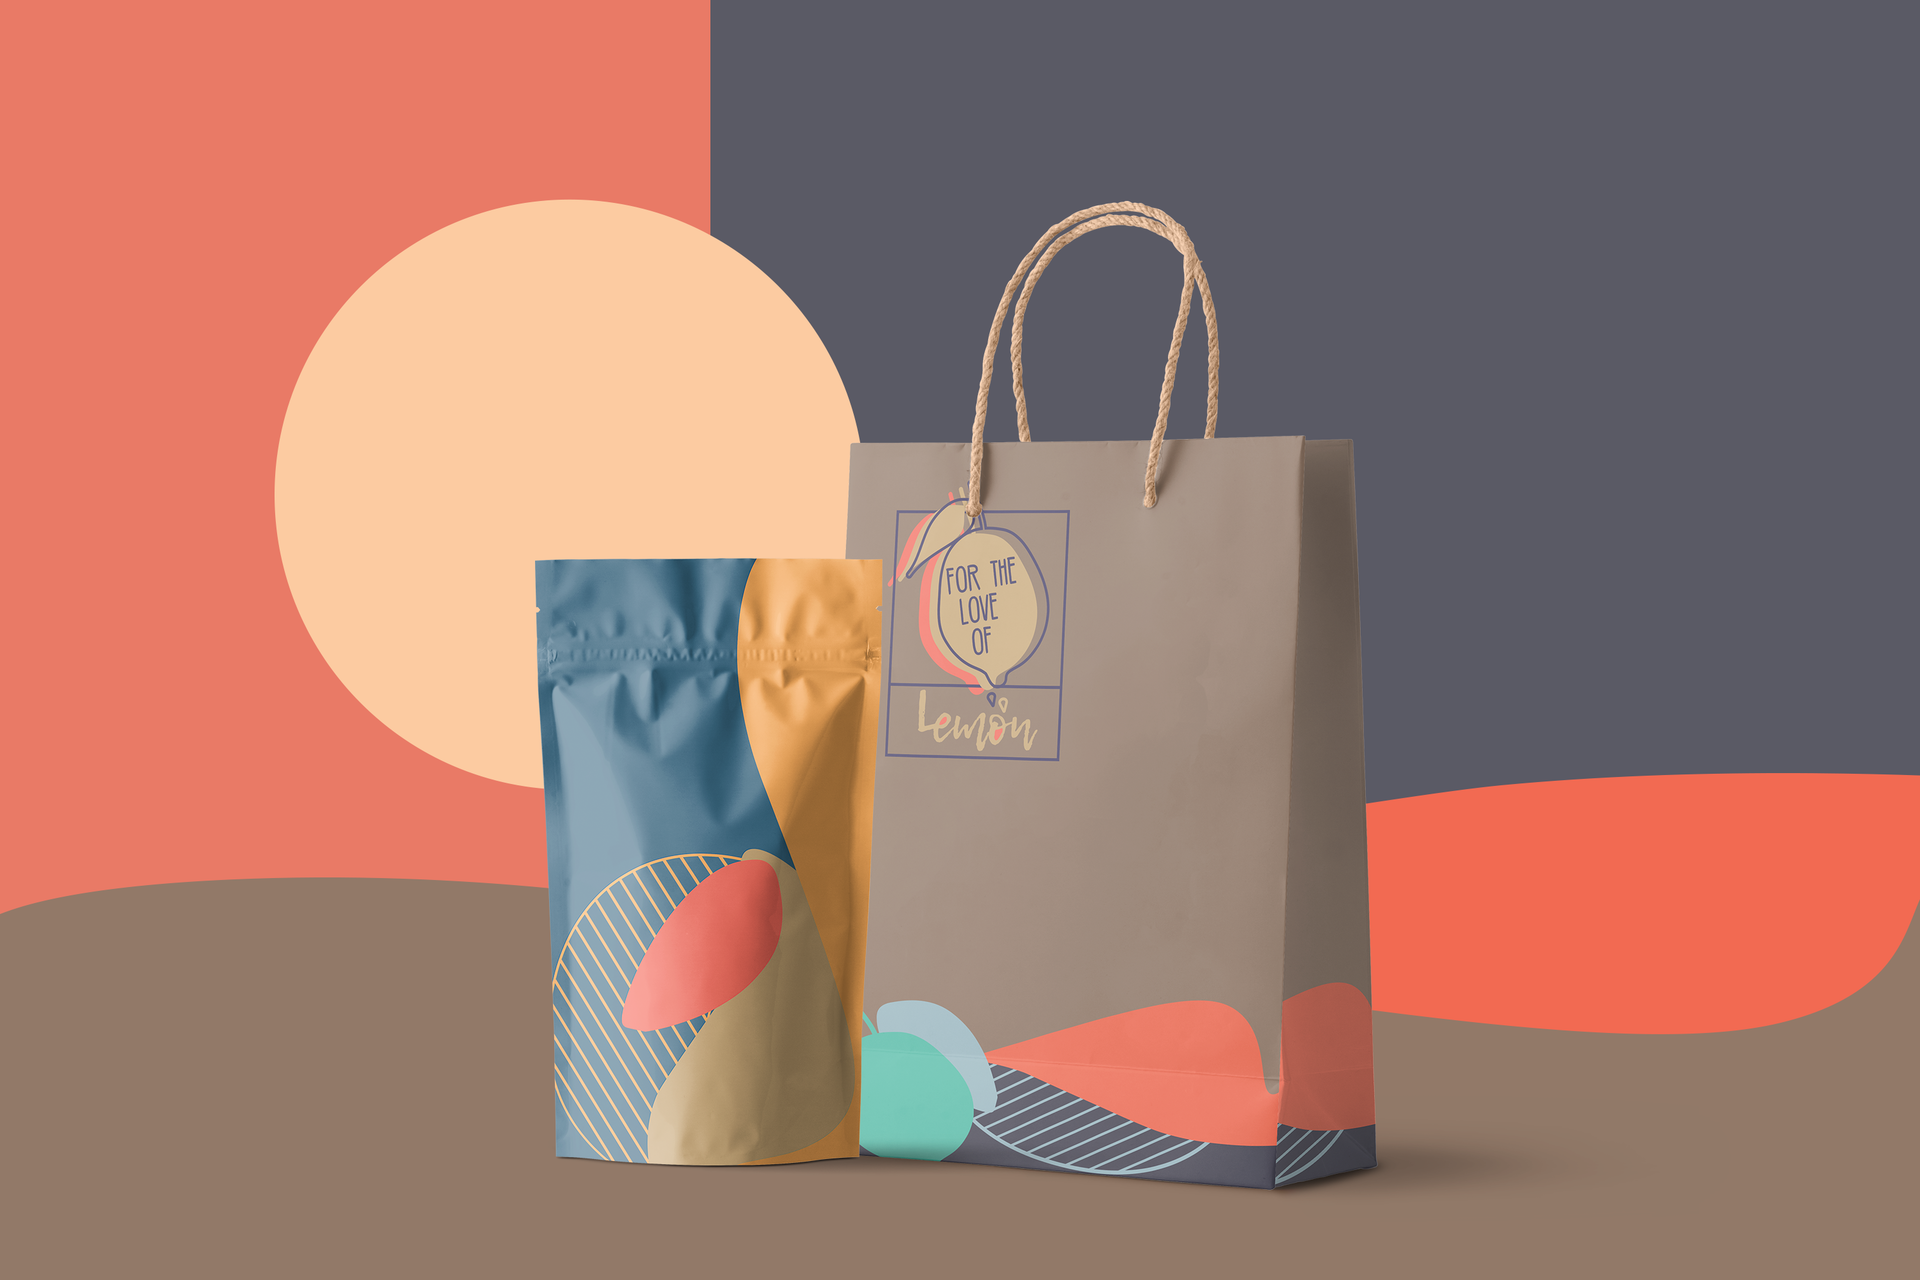 bag for the love